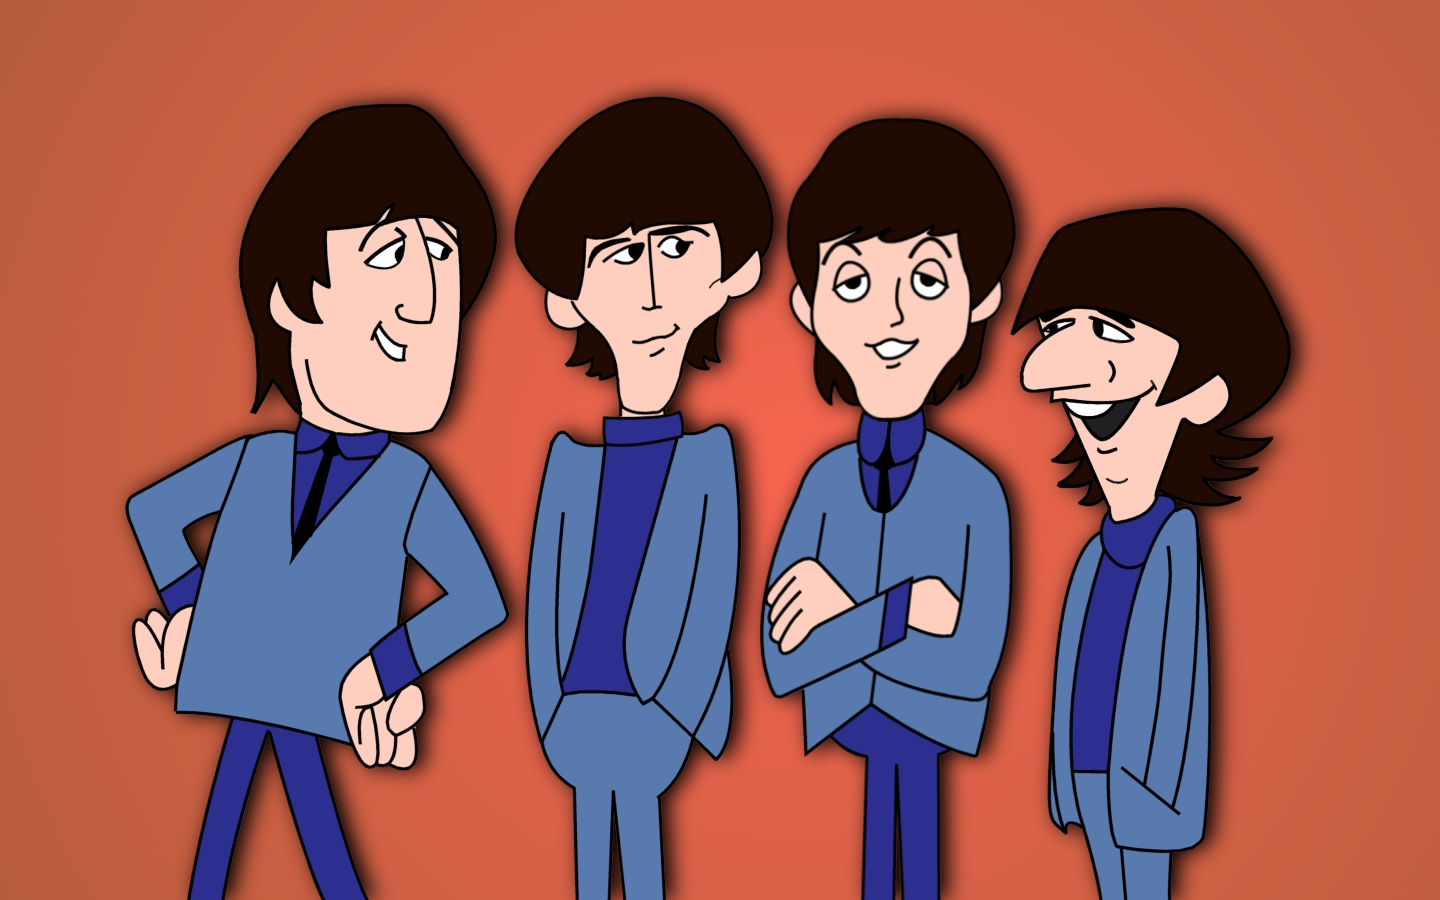 http://www.startrekanimated.com/ys_car_beatles_wall03.jpg